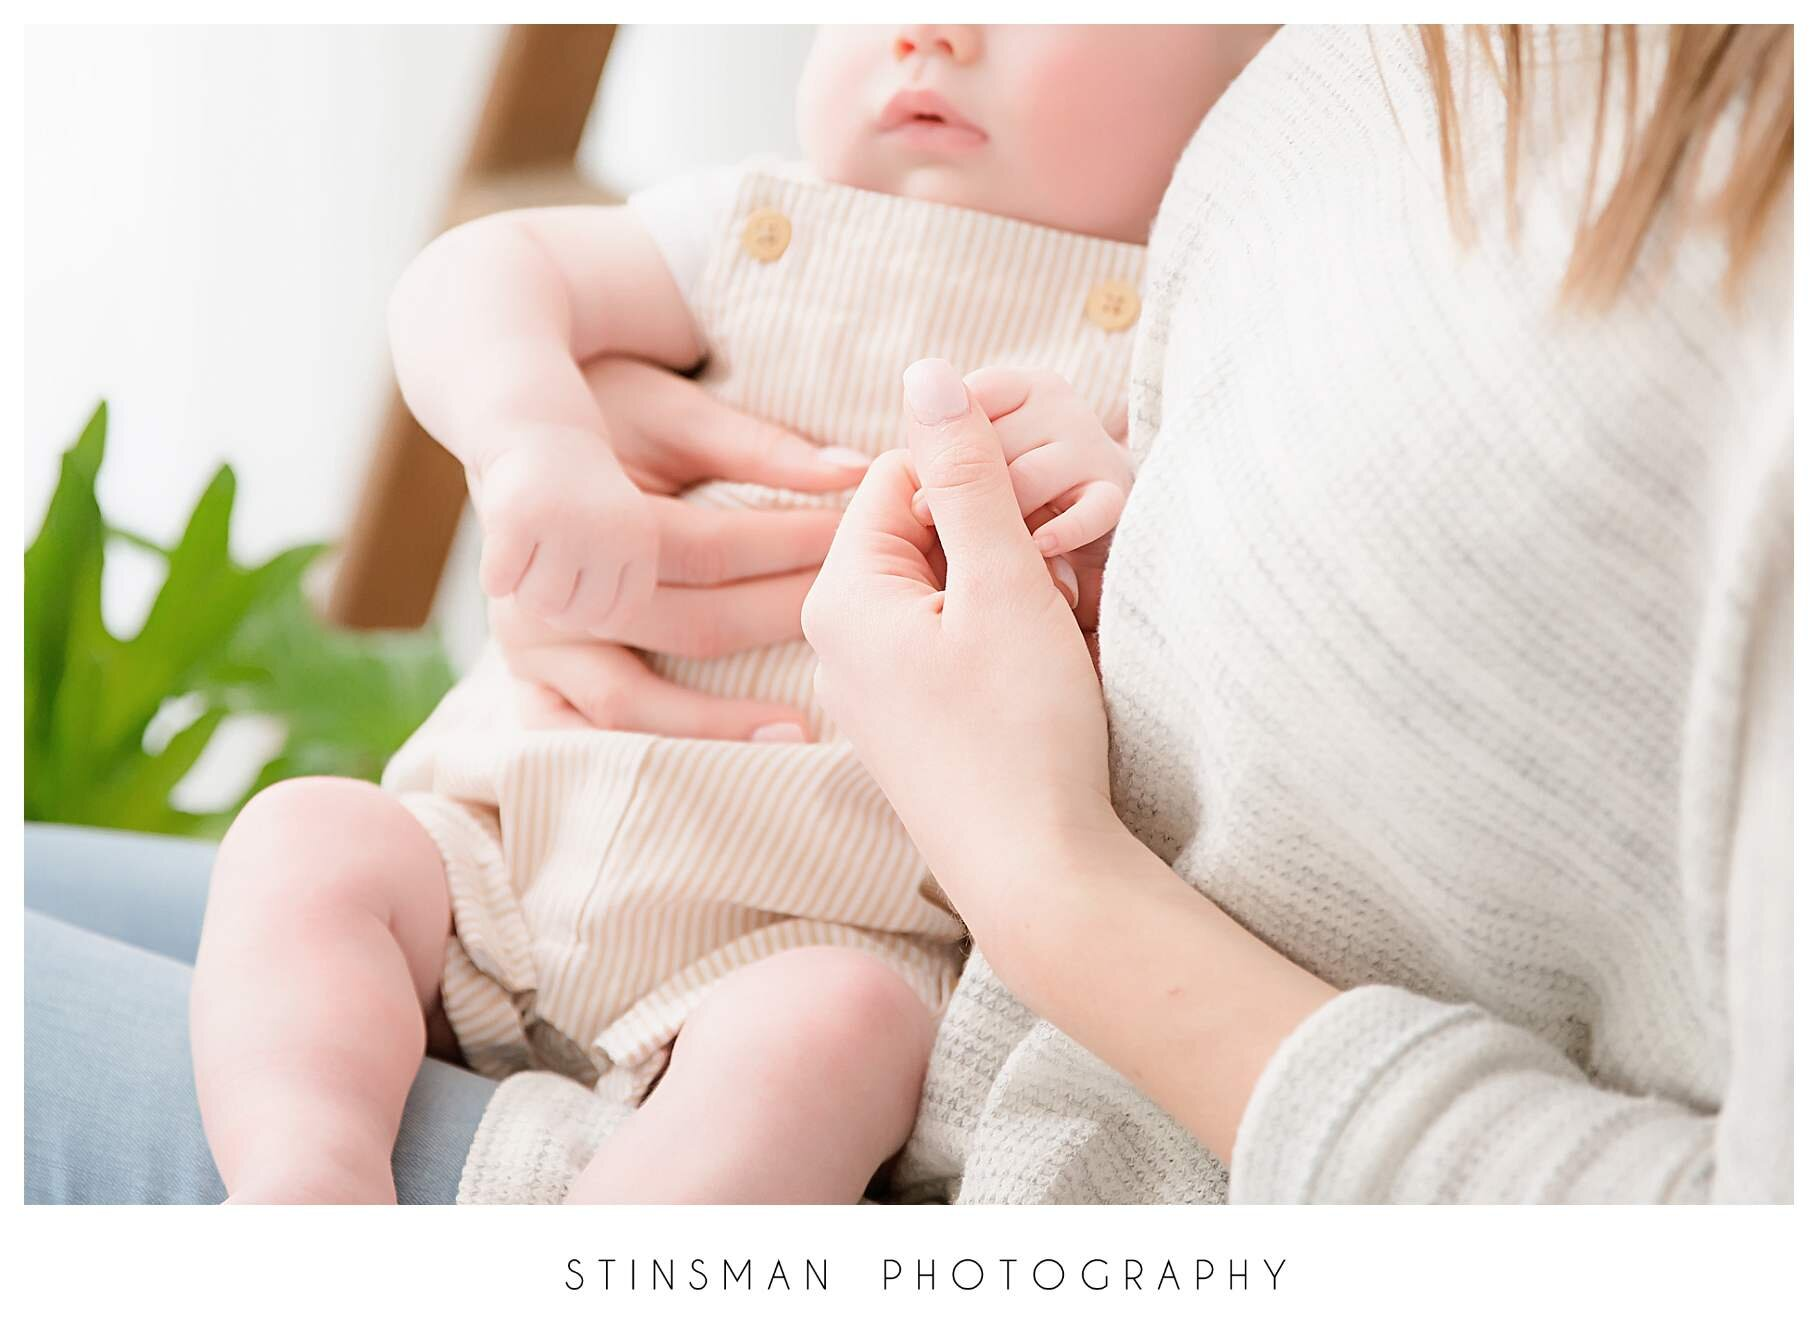 detail photo of mom holding baby hand